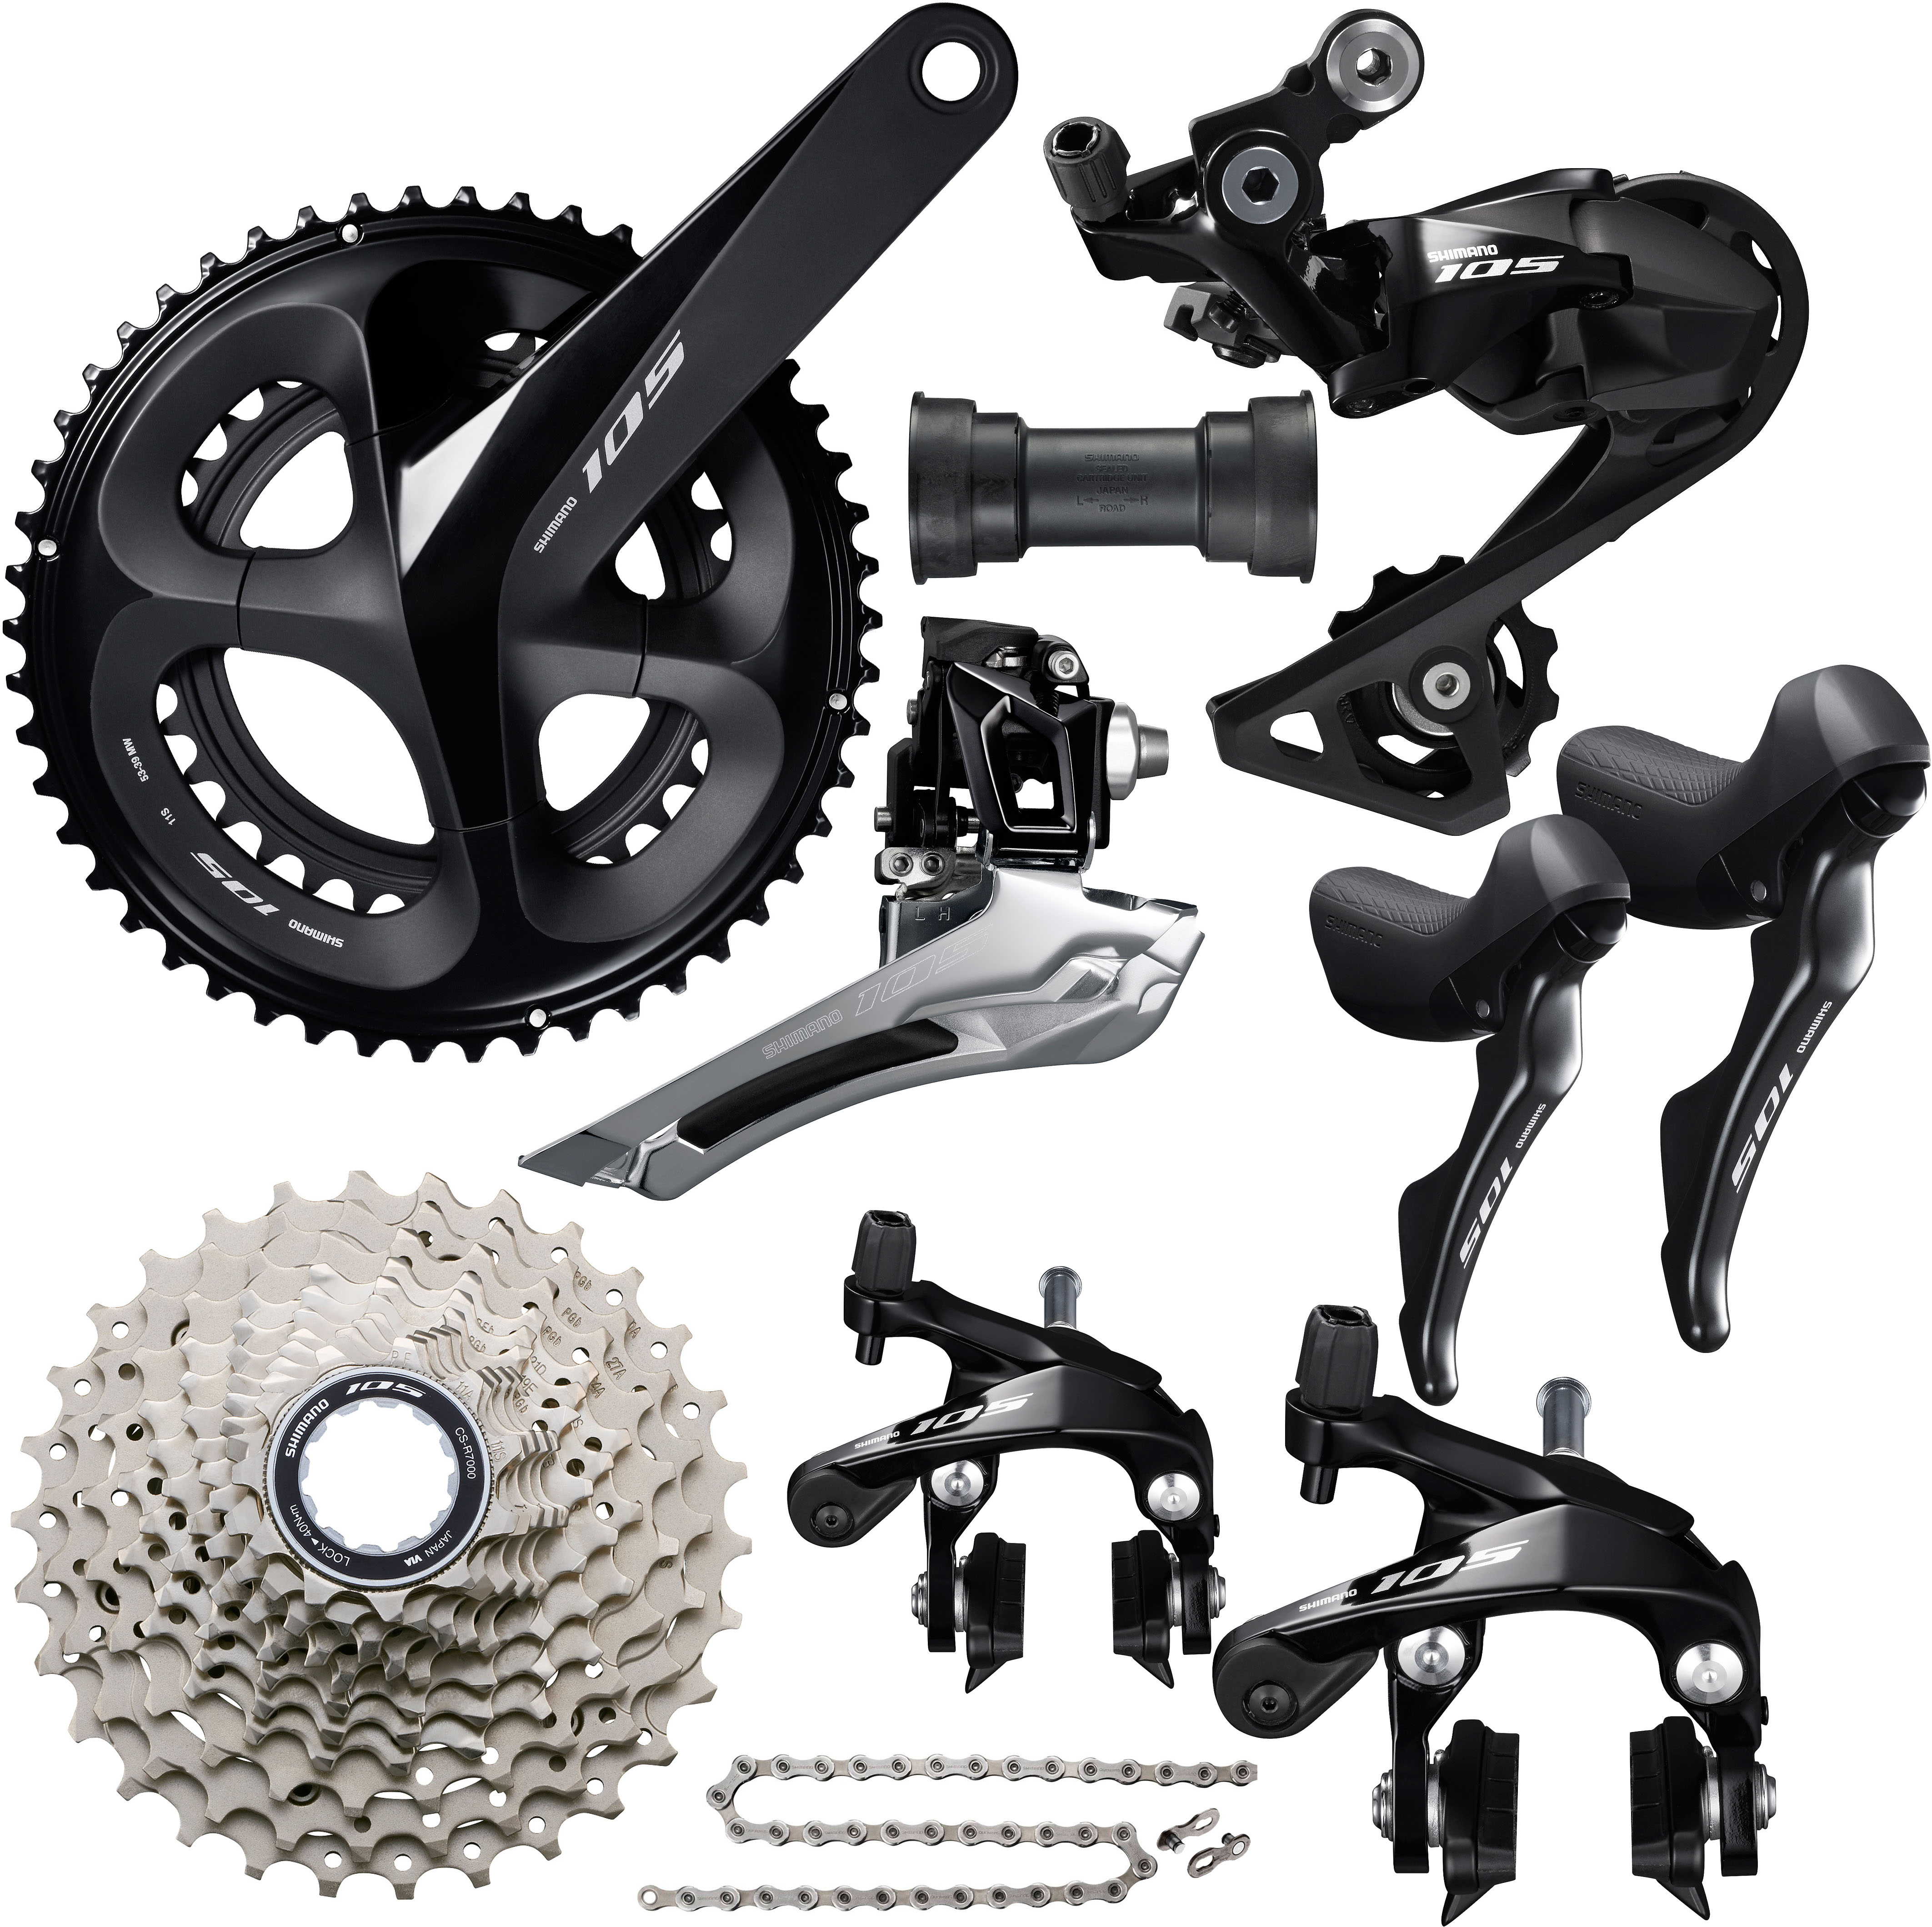 Shimano 105 R7000 Pressfit Groupset | Groupsets